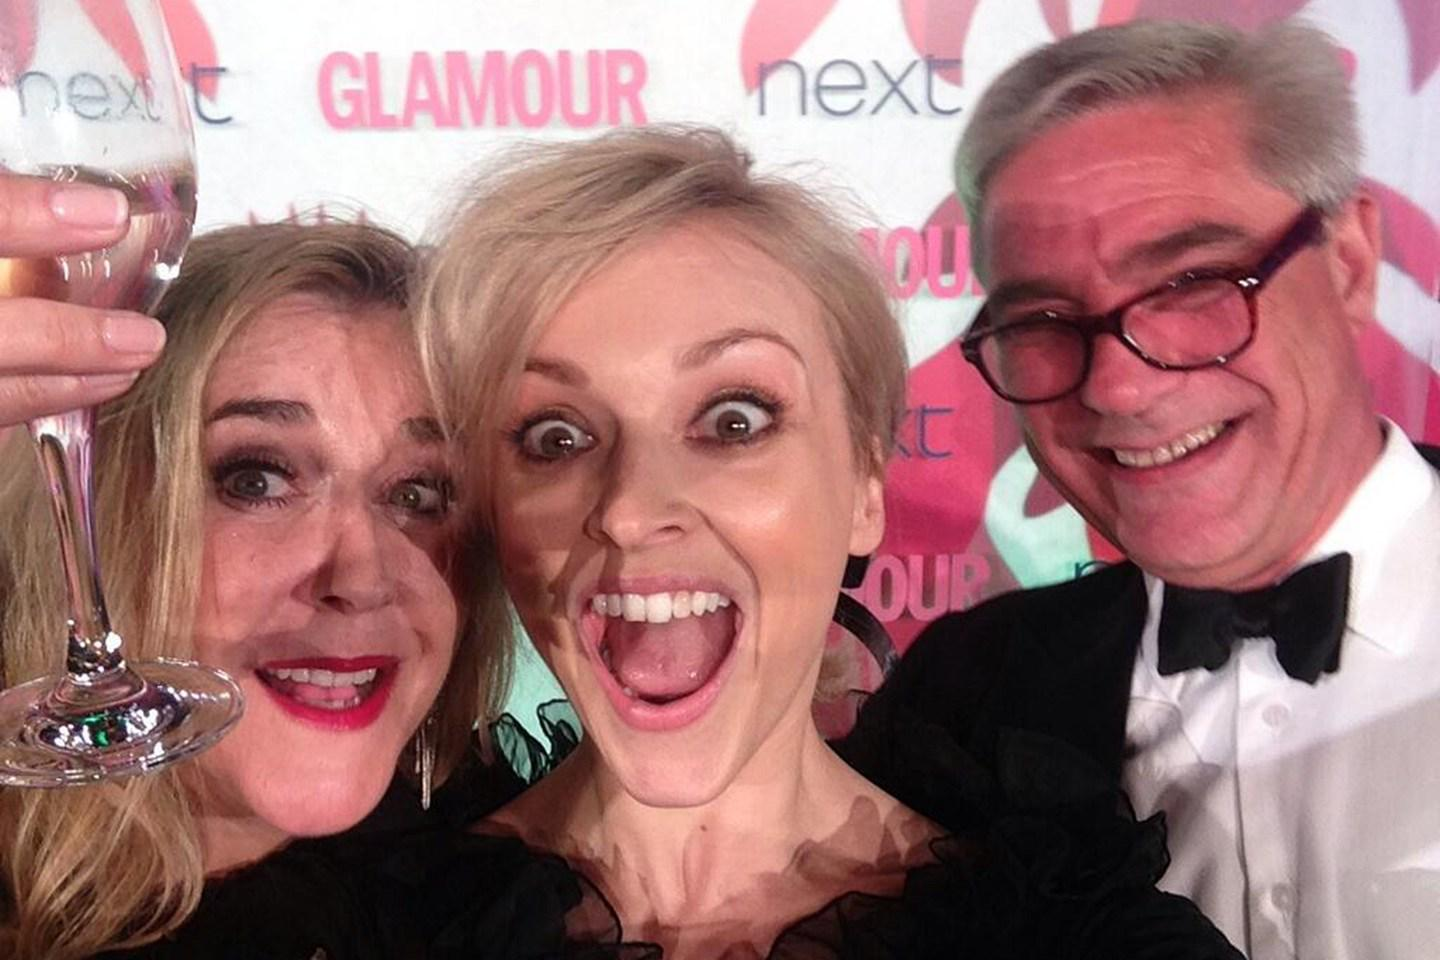 RT @GlamourMagUK: Remember @Fearnecotton's #Gogglebox selfie last year? The best moments from the #GlamourAwards http://t.co/t6w2HCwvbt htt…